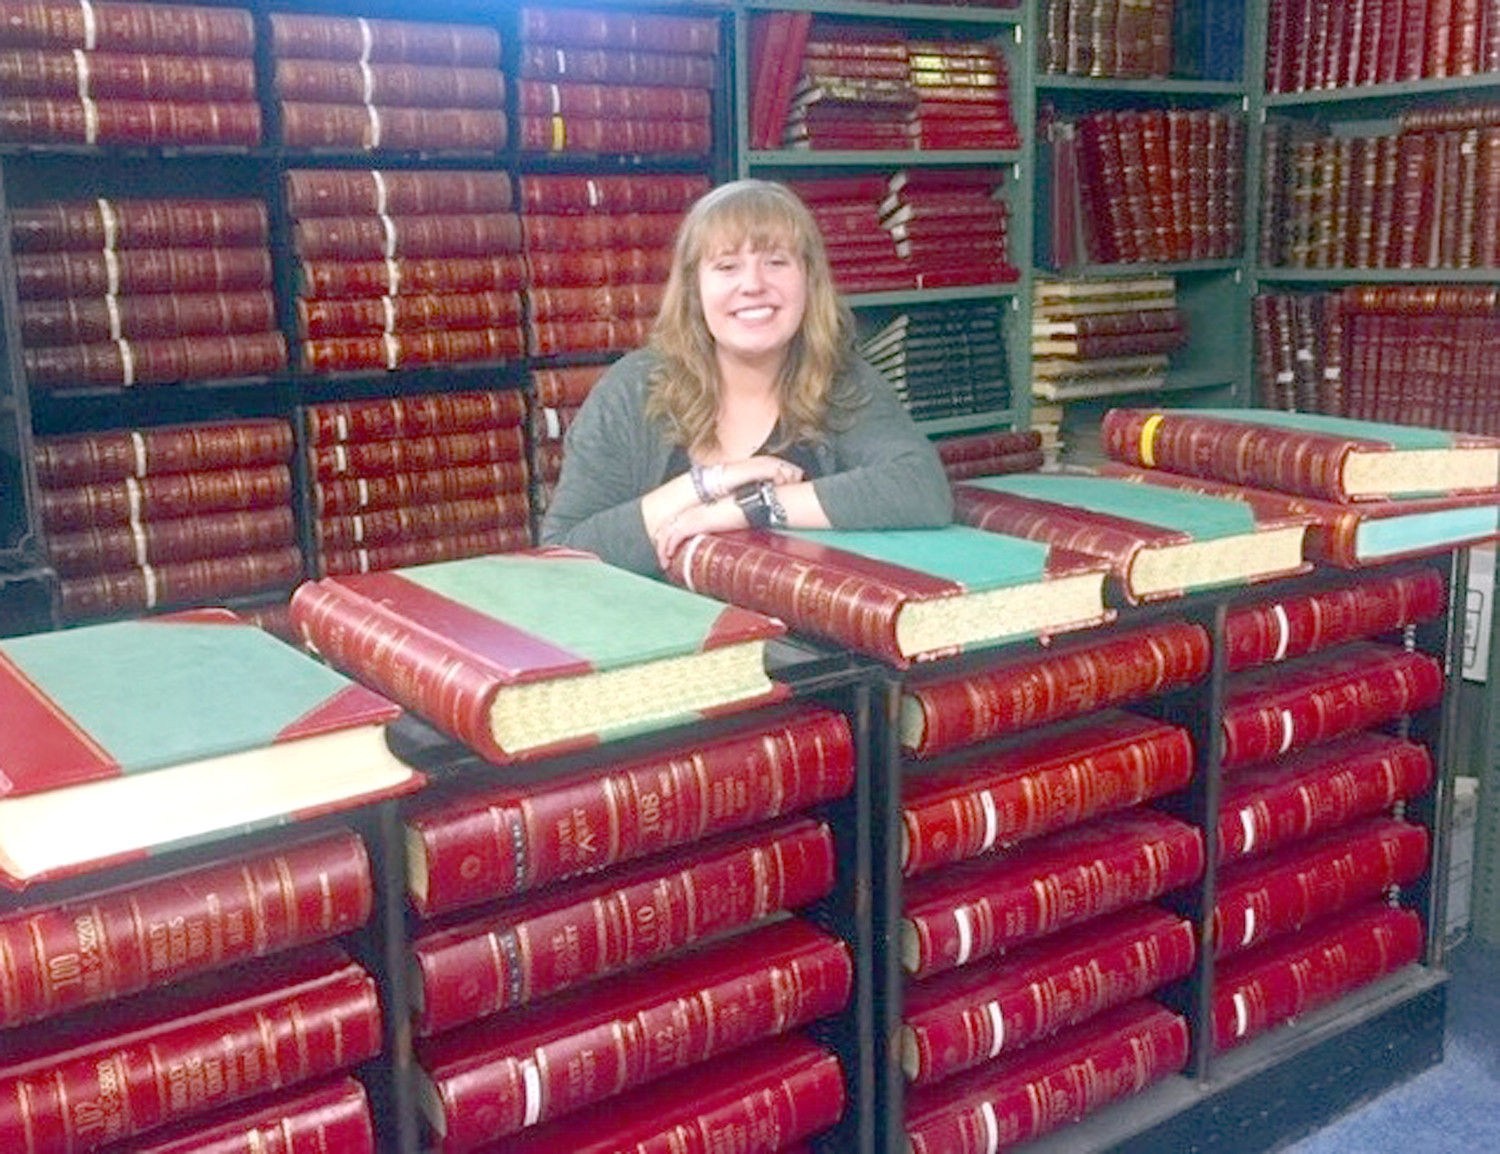 EMILY HARRIS started her internship in the Bradley County Archives surrounded by a wealth of knowledge